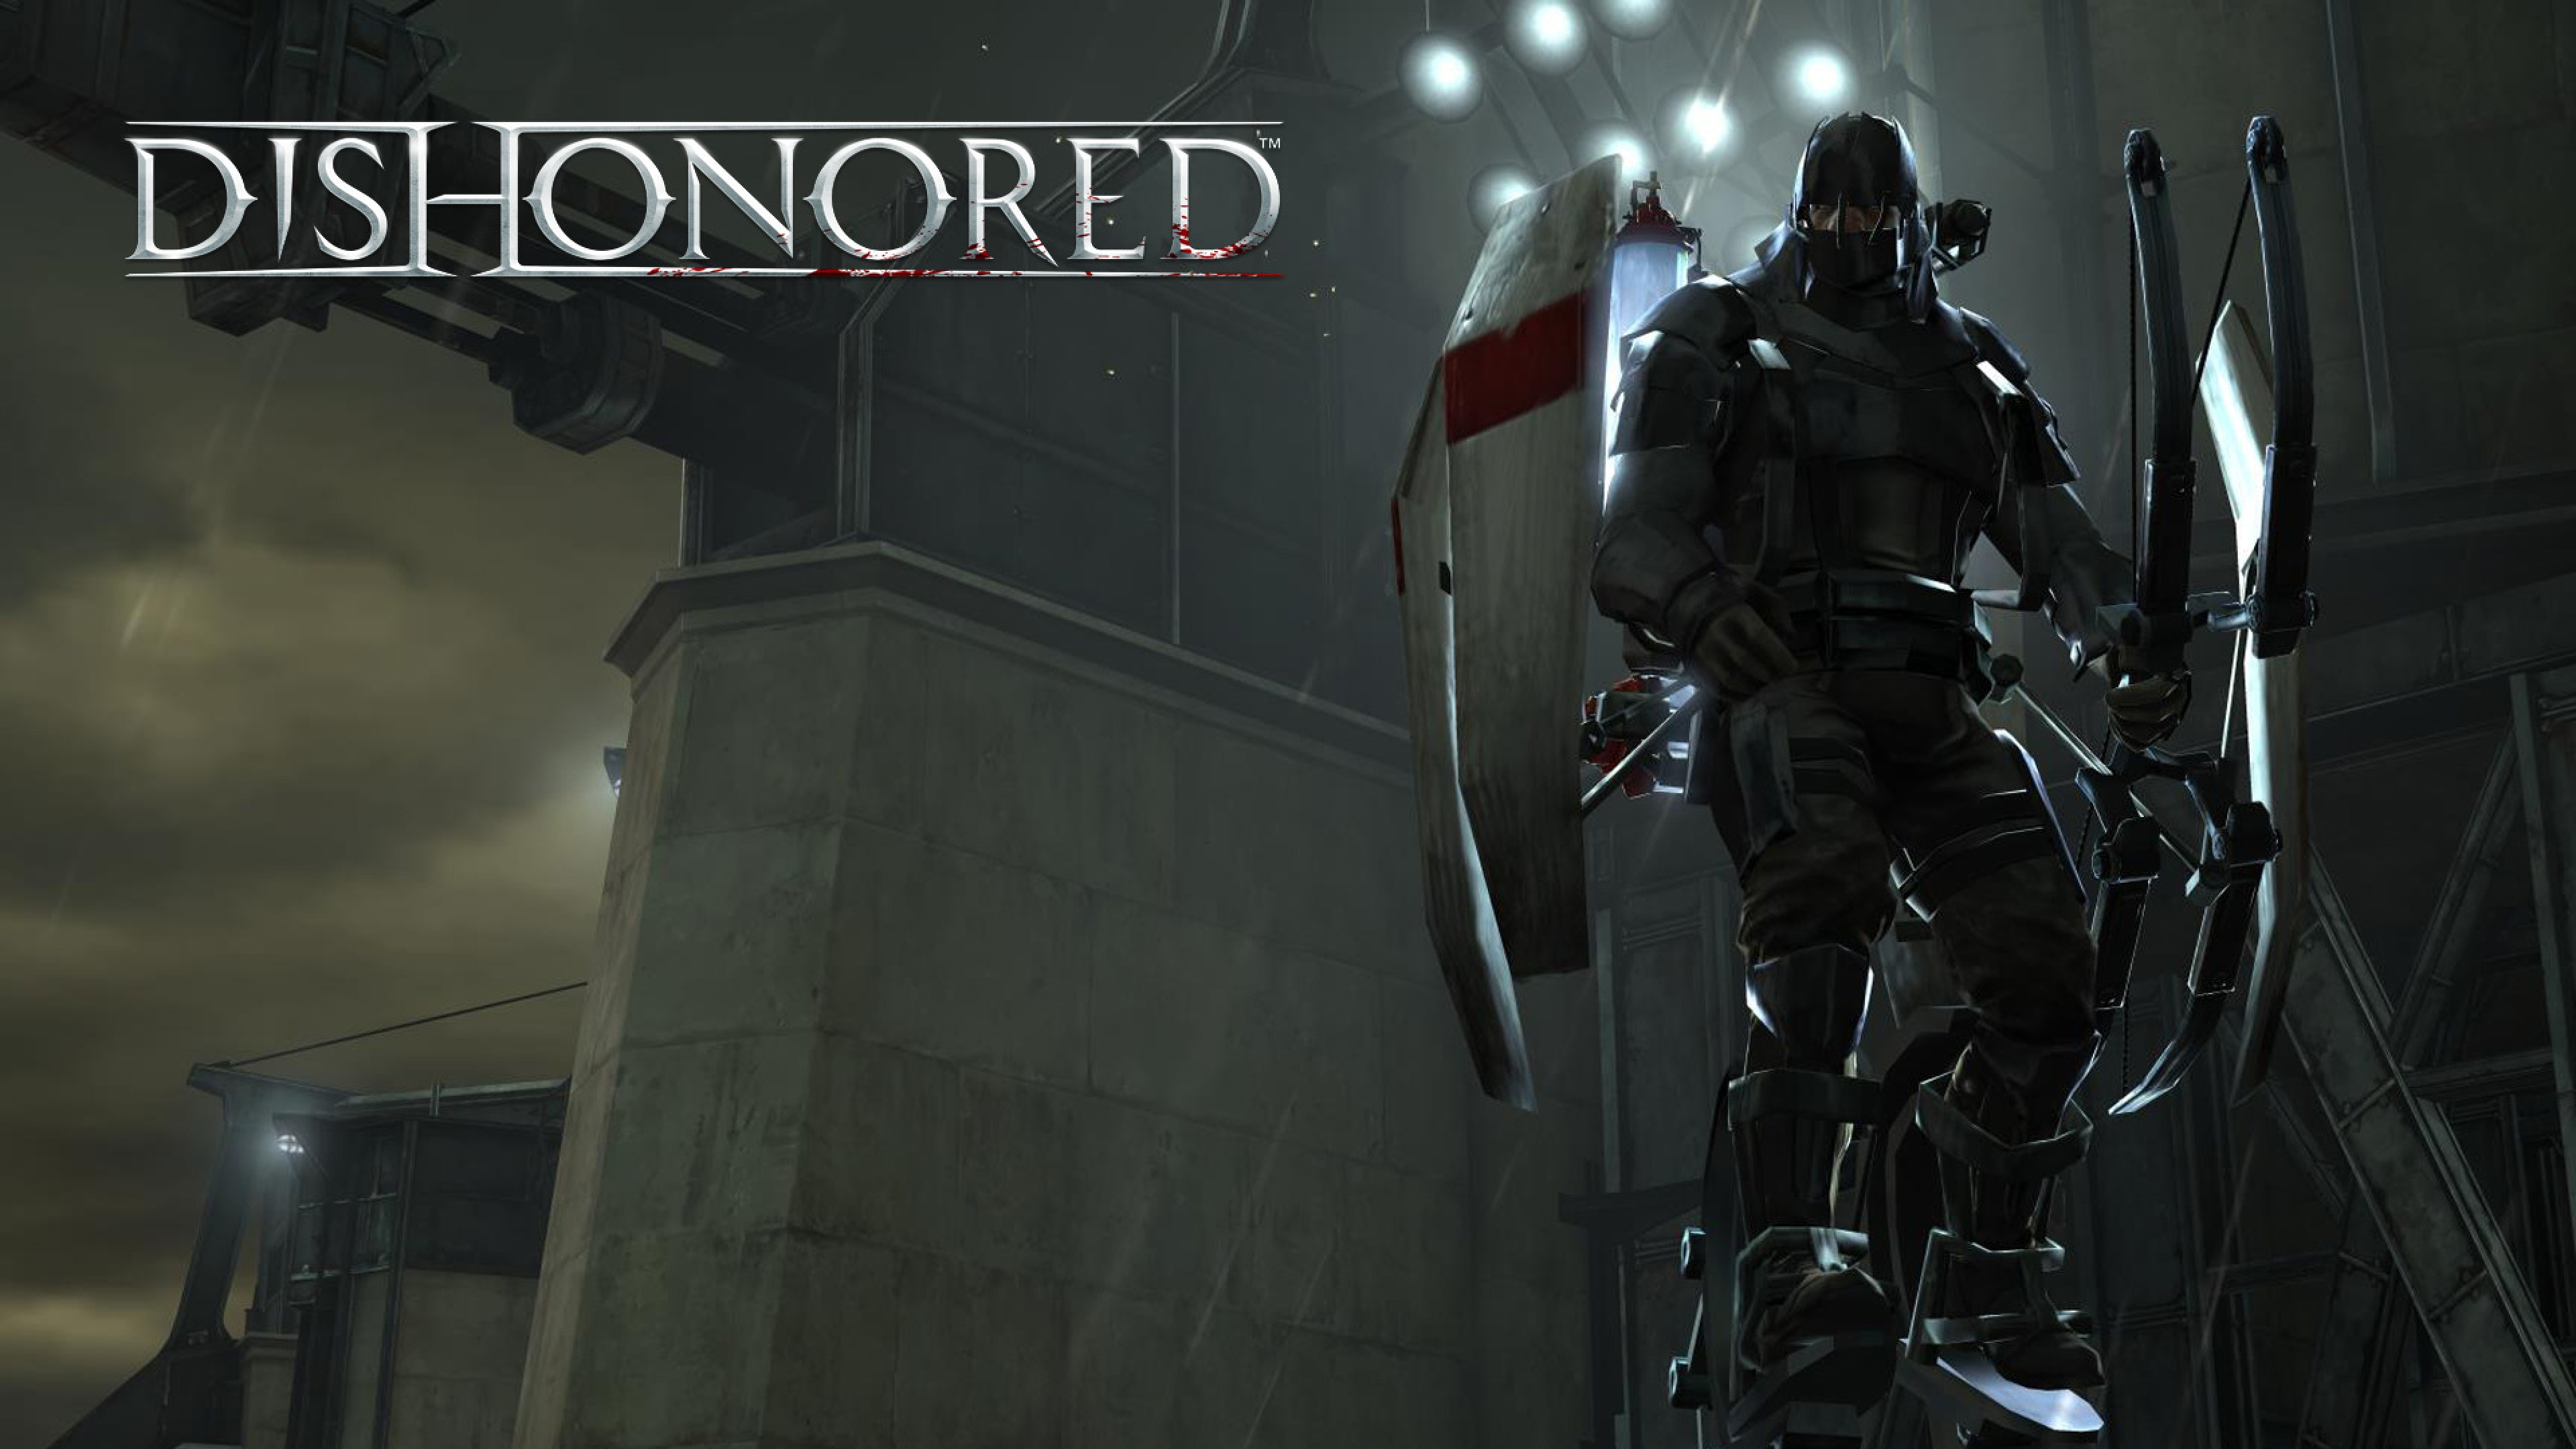 Dishonored Wallpaper 4k: Dishonored 2 Games, HD Games, 4k Wallpapers, Images